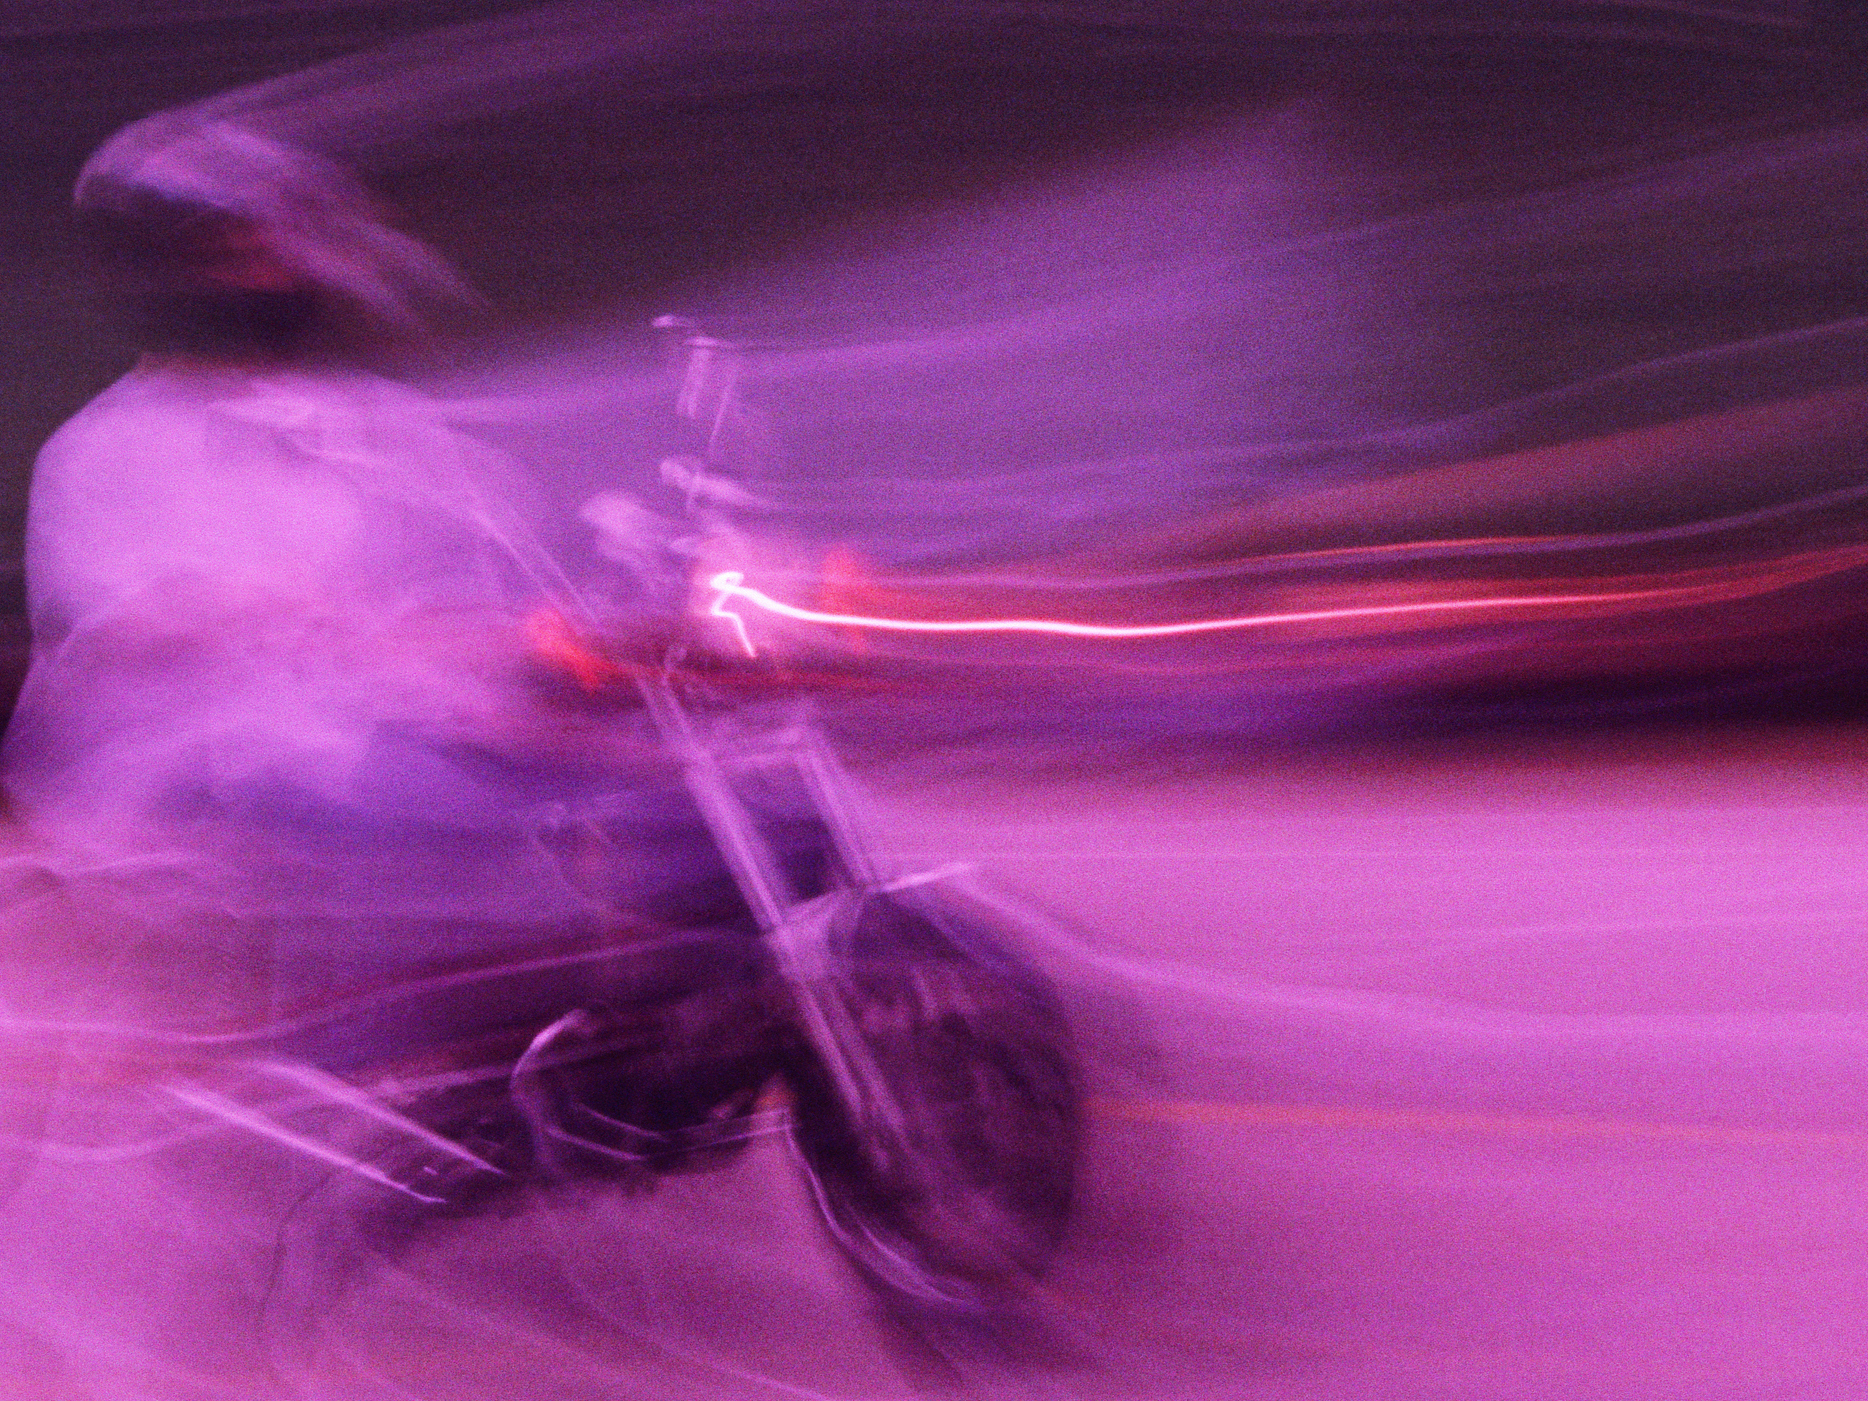 Motorcycle Crash Shows Bioethicist The Dark Side Of Quitting Opioids Alone